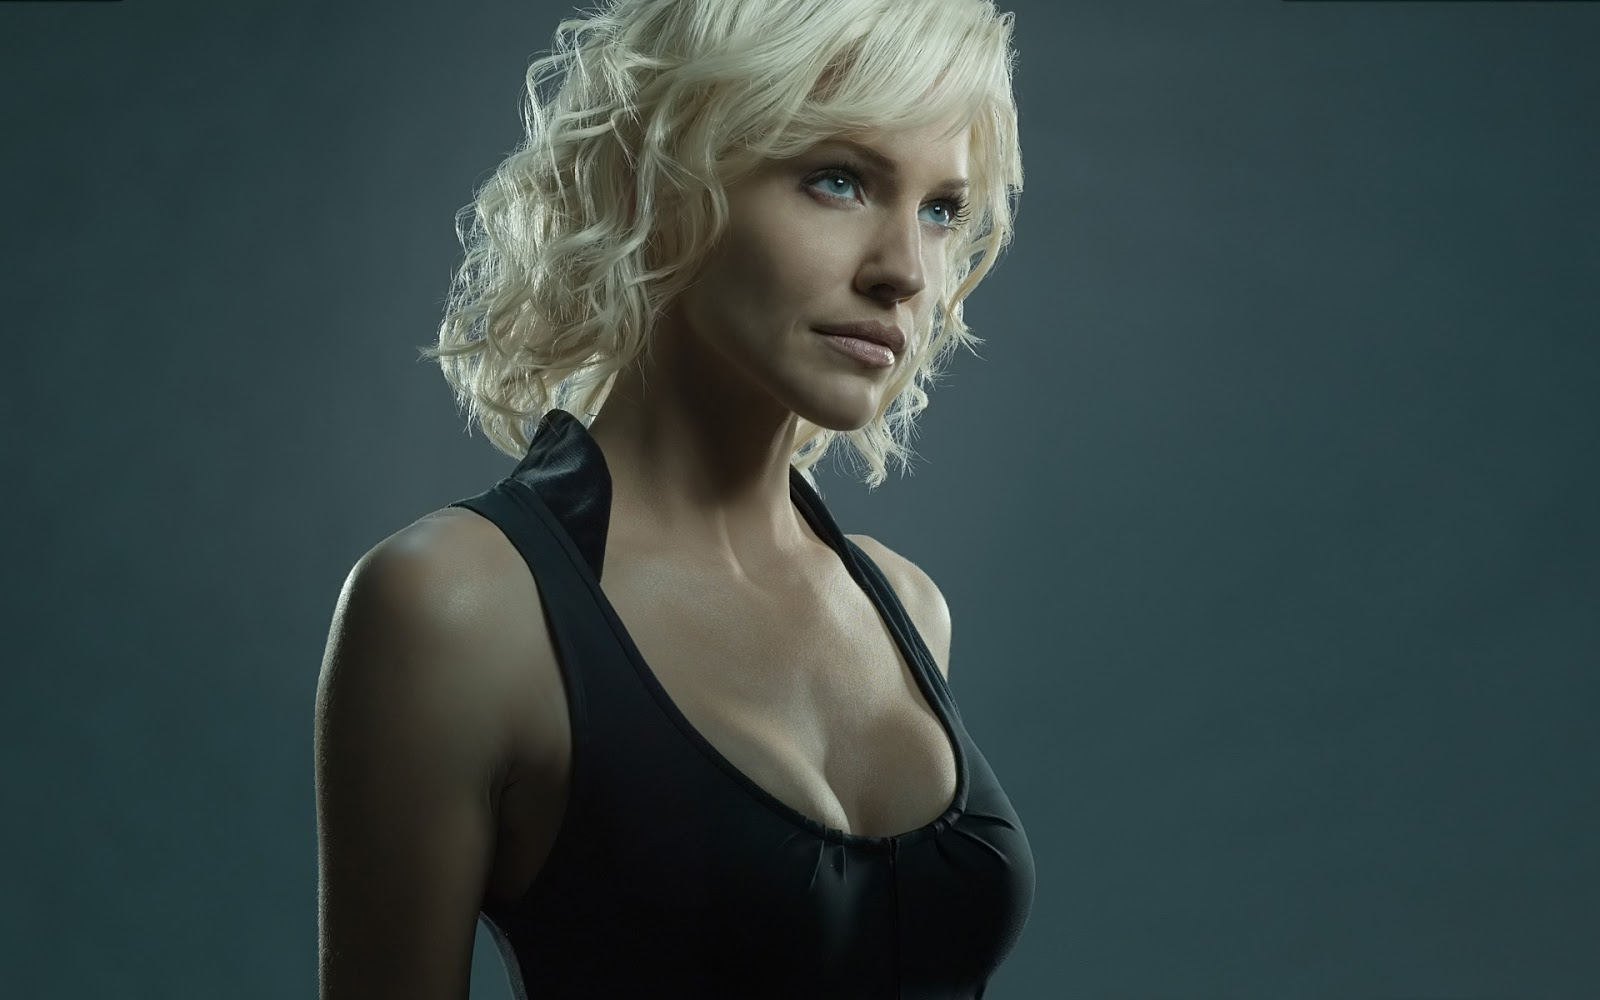 Ascension - Tricia Helfer to Star